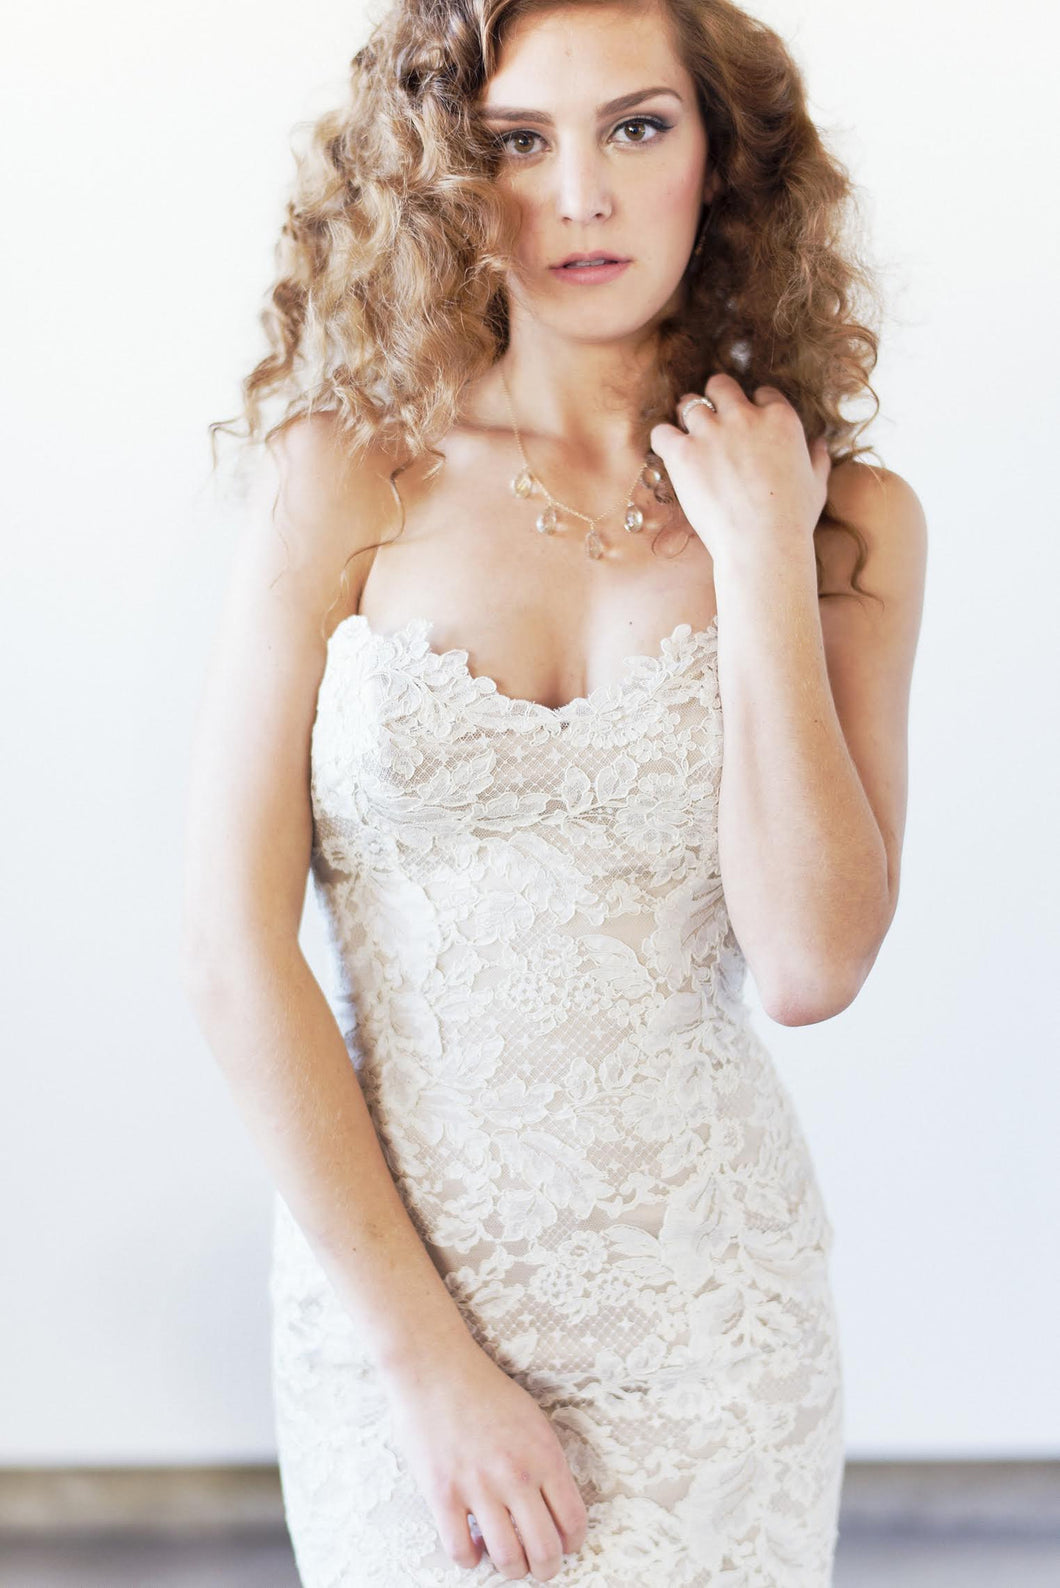 Anna Maier 'Lyon' - Anna Maier - Nearly Newlywed Bridal Boutique - 1